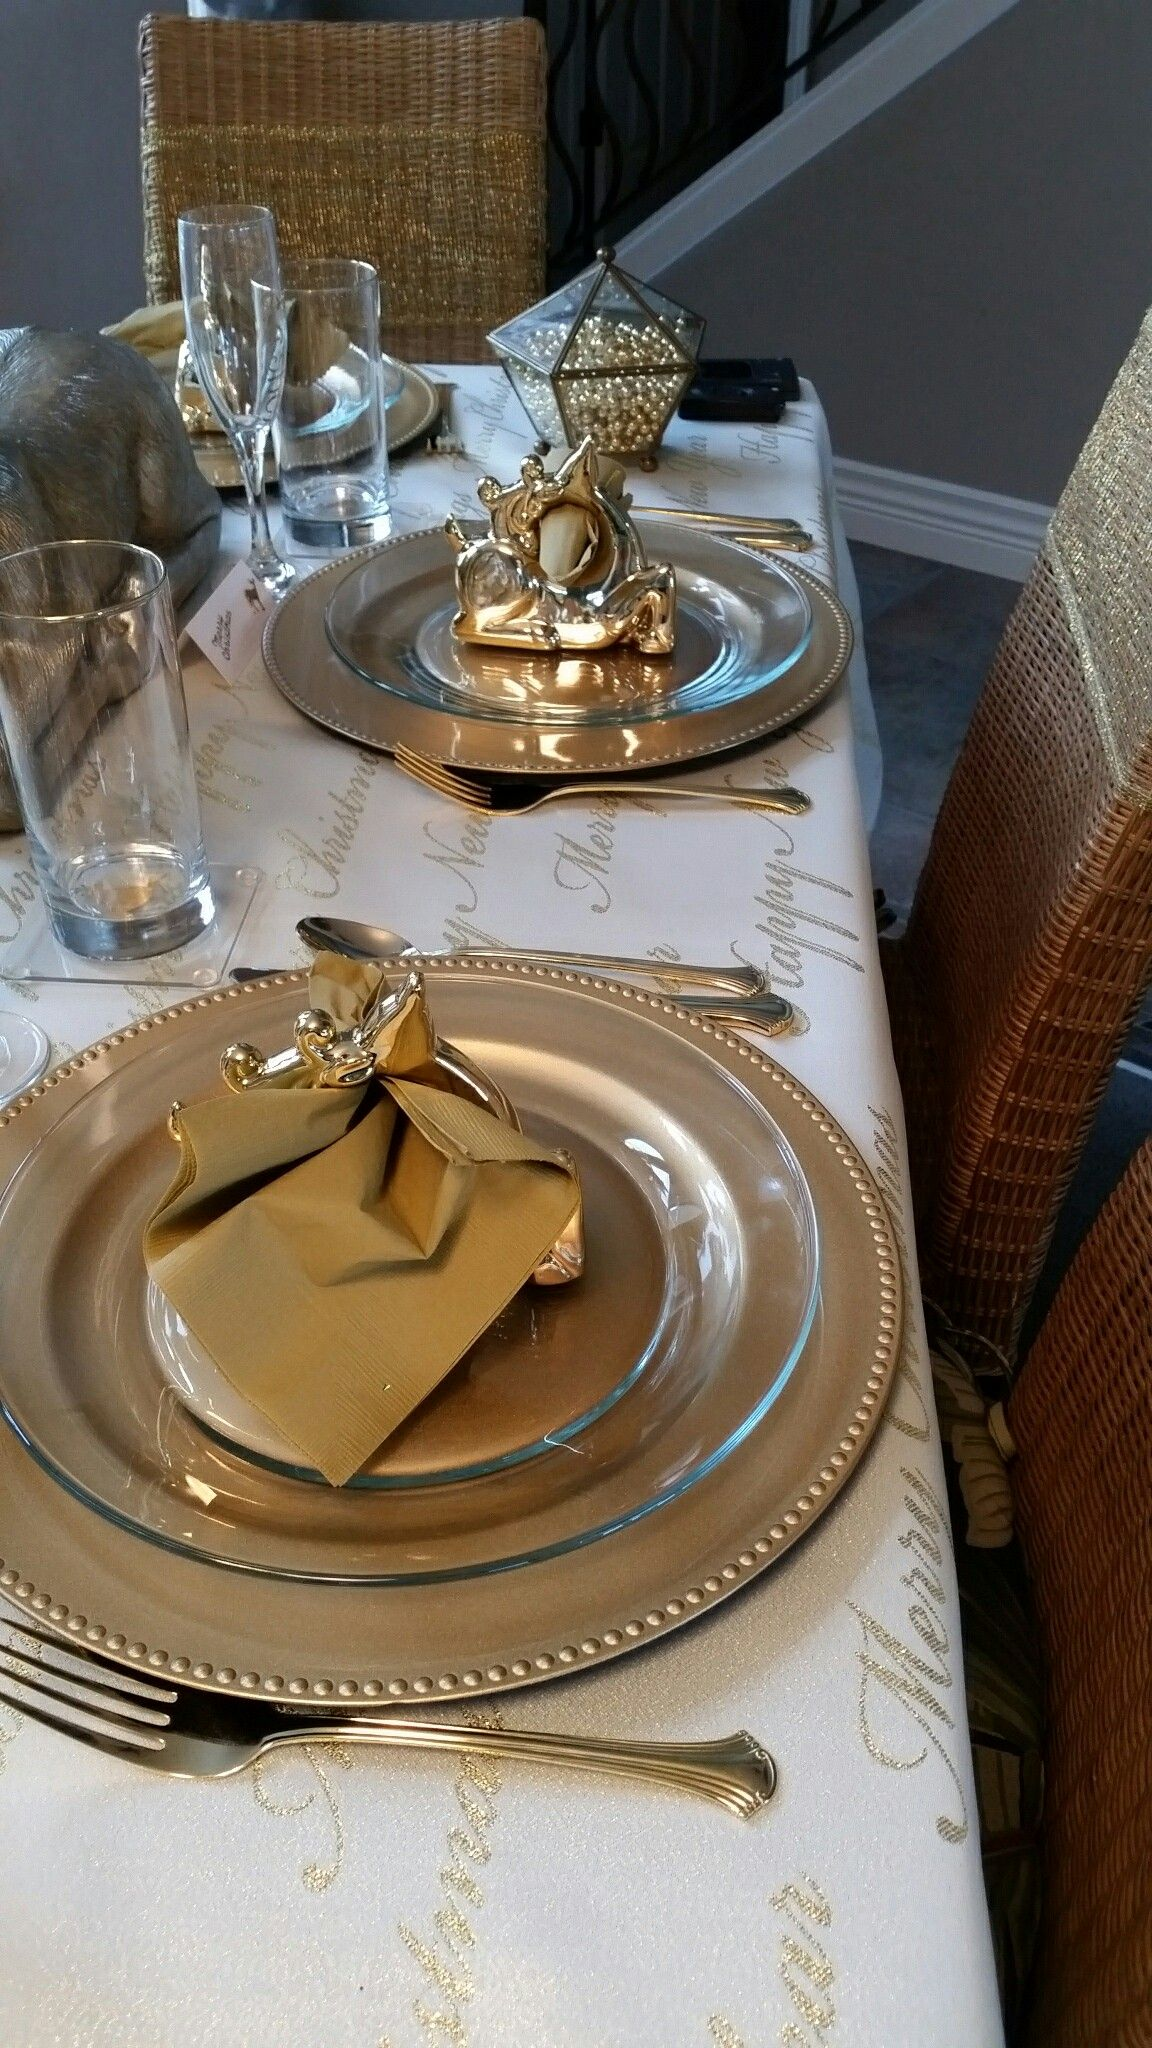 Table Setting Gold Reindeer Christmas Reindeer Napkin Holders Dollar Tree 2016 Reindeer Napkins Reindeer Decorations Gold Reindeer